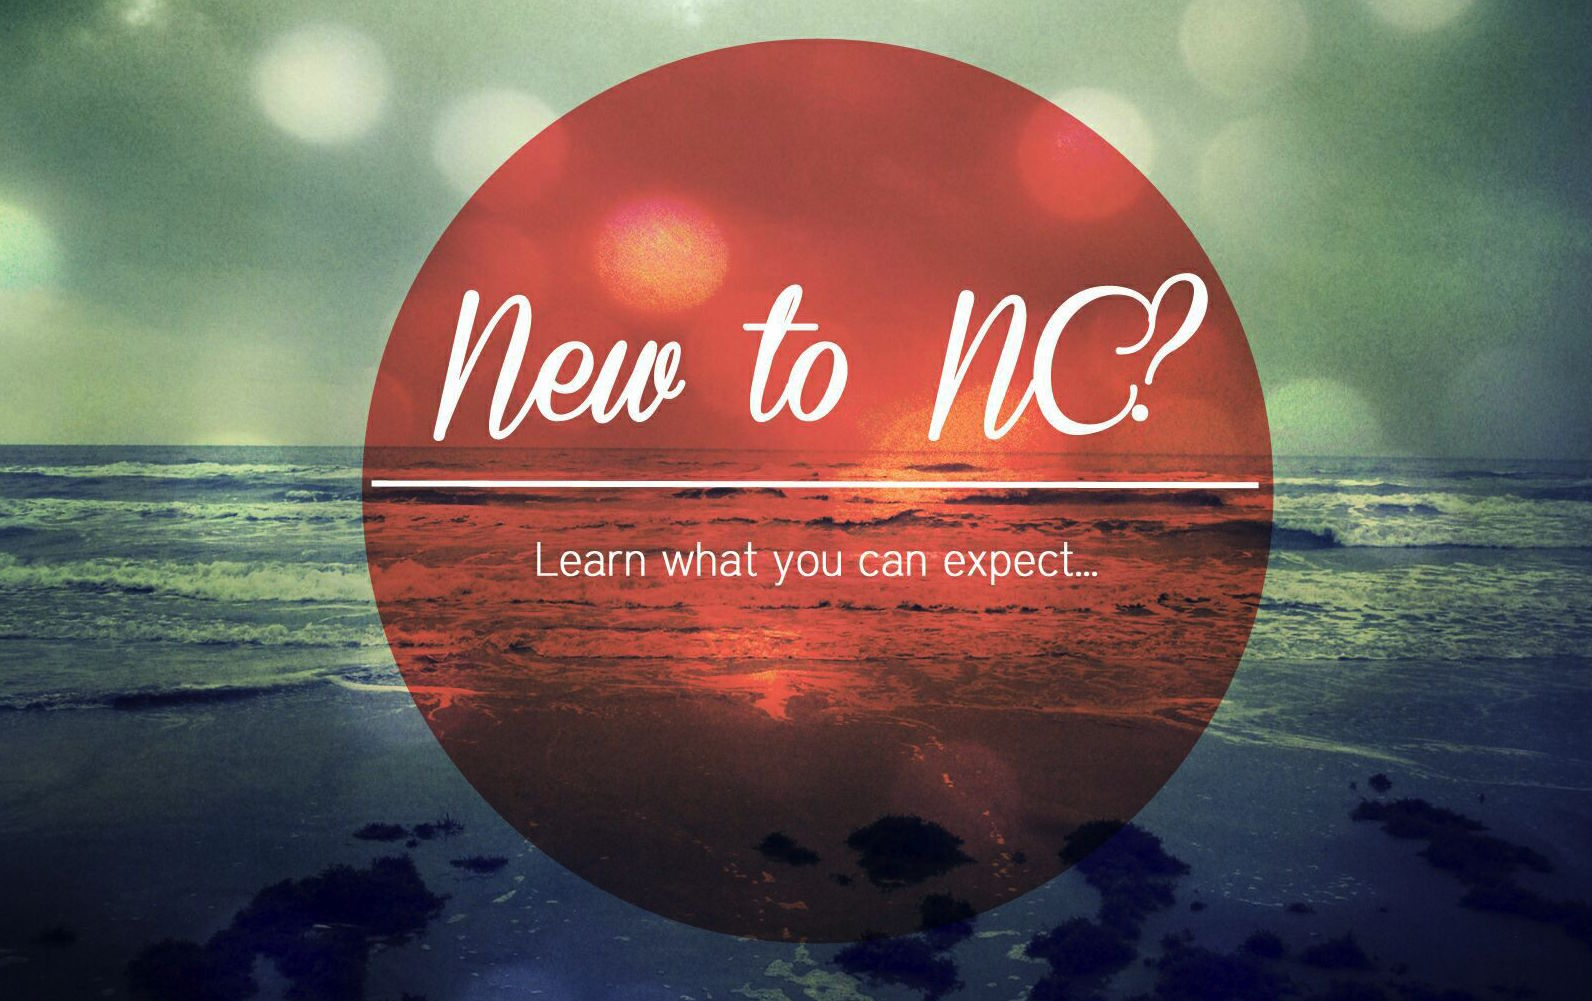 What to Expect at New Covenant